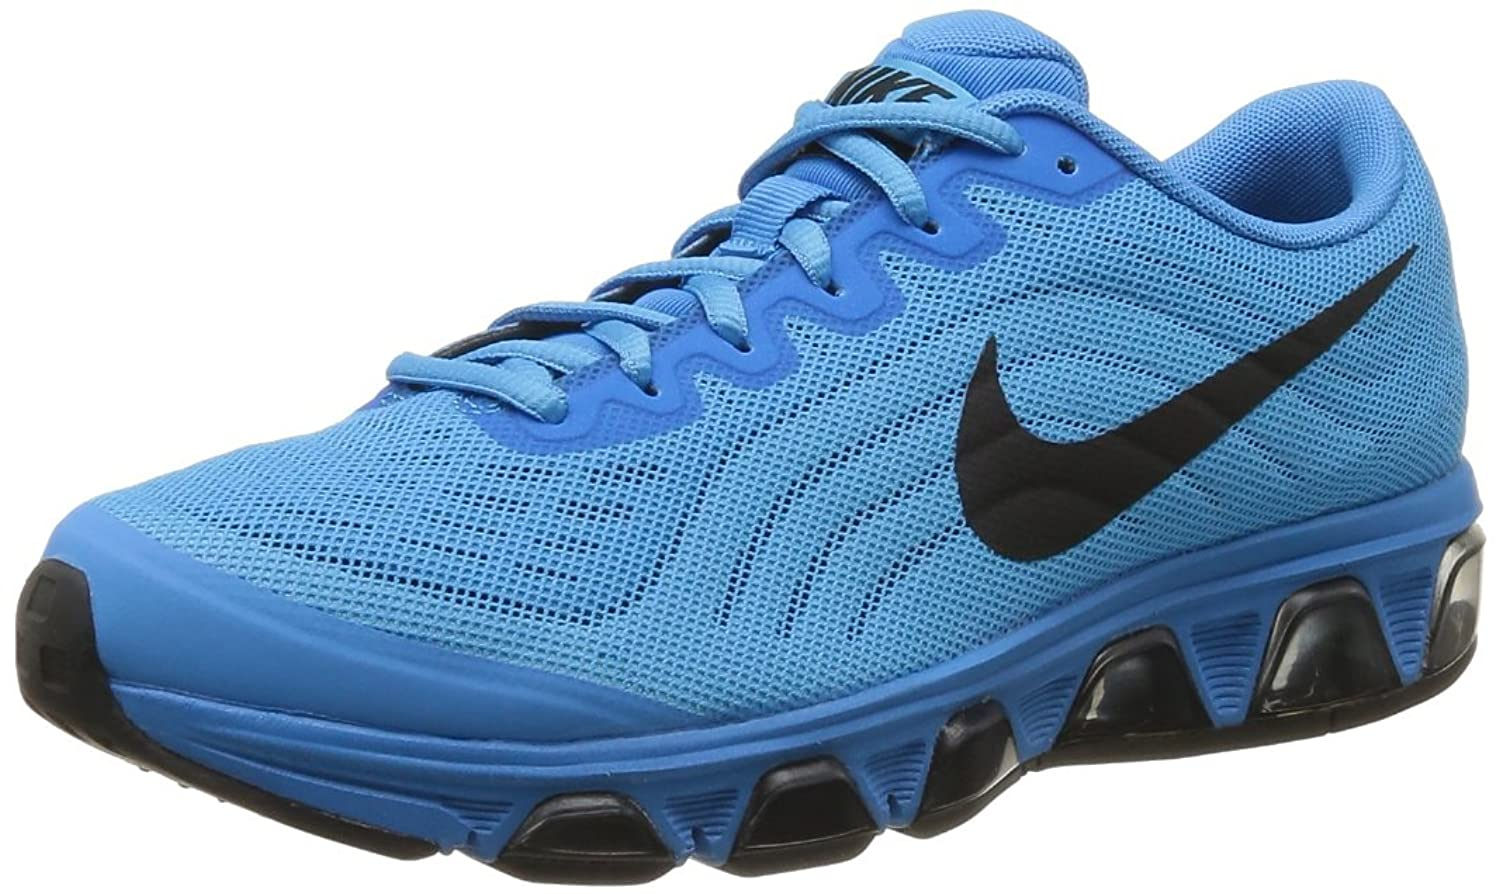 Norway Nike Air Max Tailwind 7 Mens - Nike Tailwind Running Vivid Glacier Dp B00i8rxk90